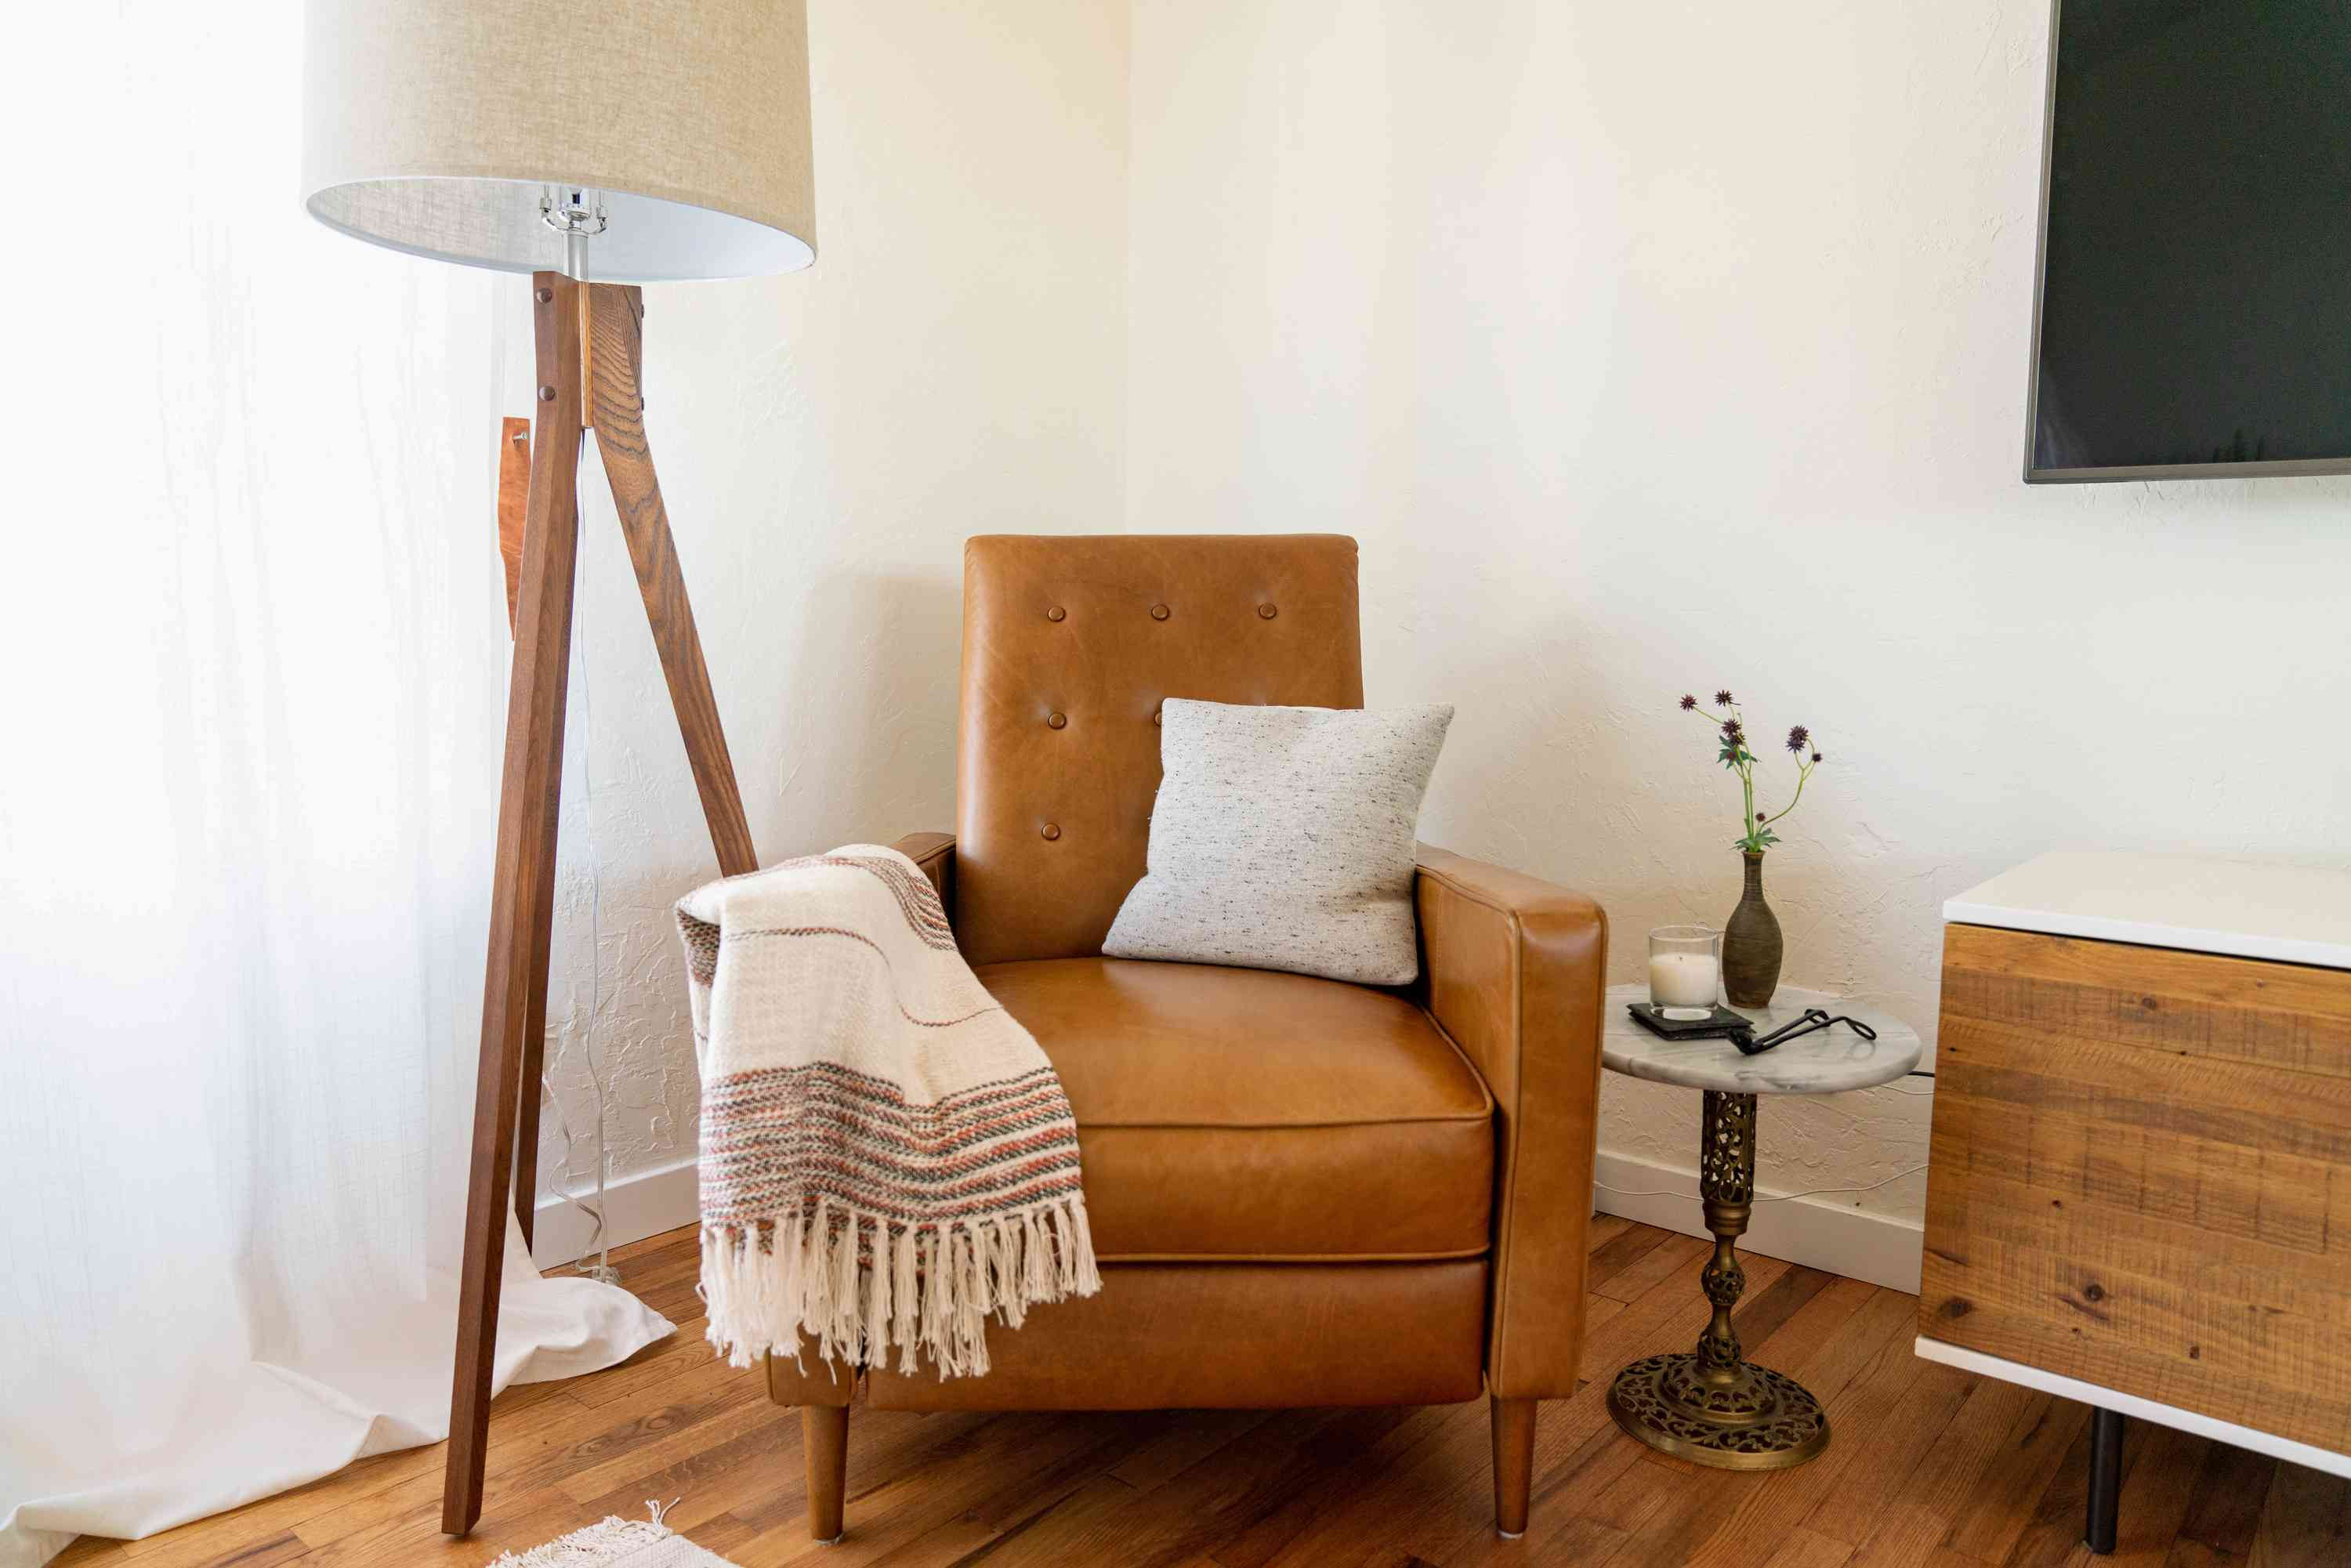 Mid-century modern style brown chair with throw blanket and pillow next to floor lamp